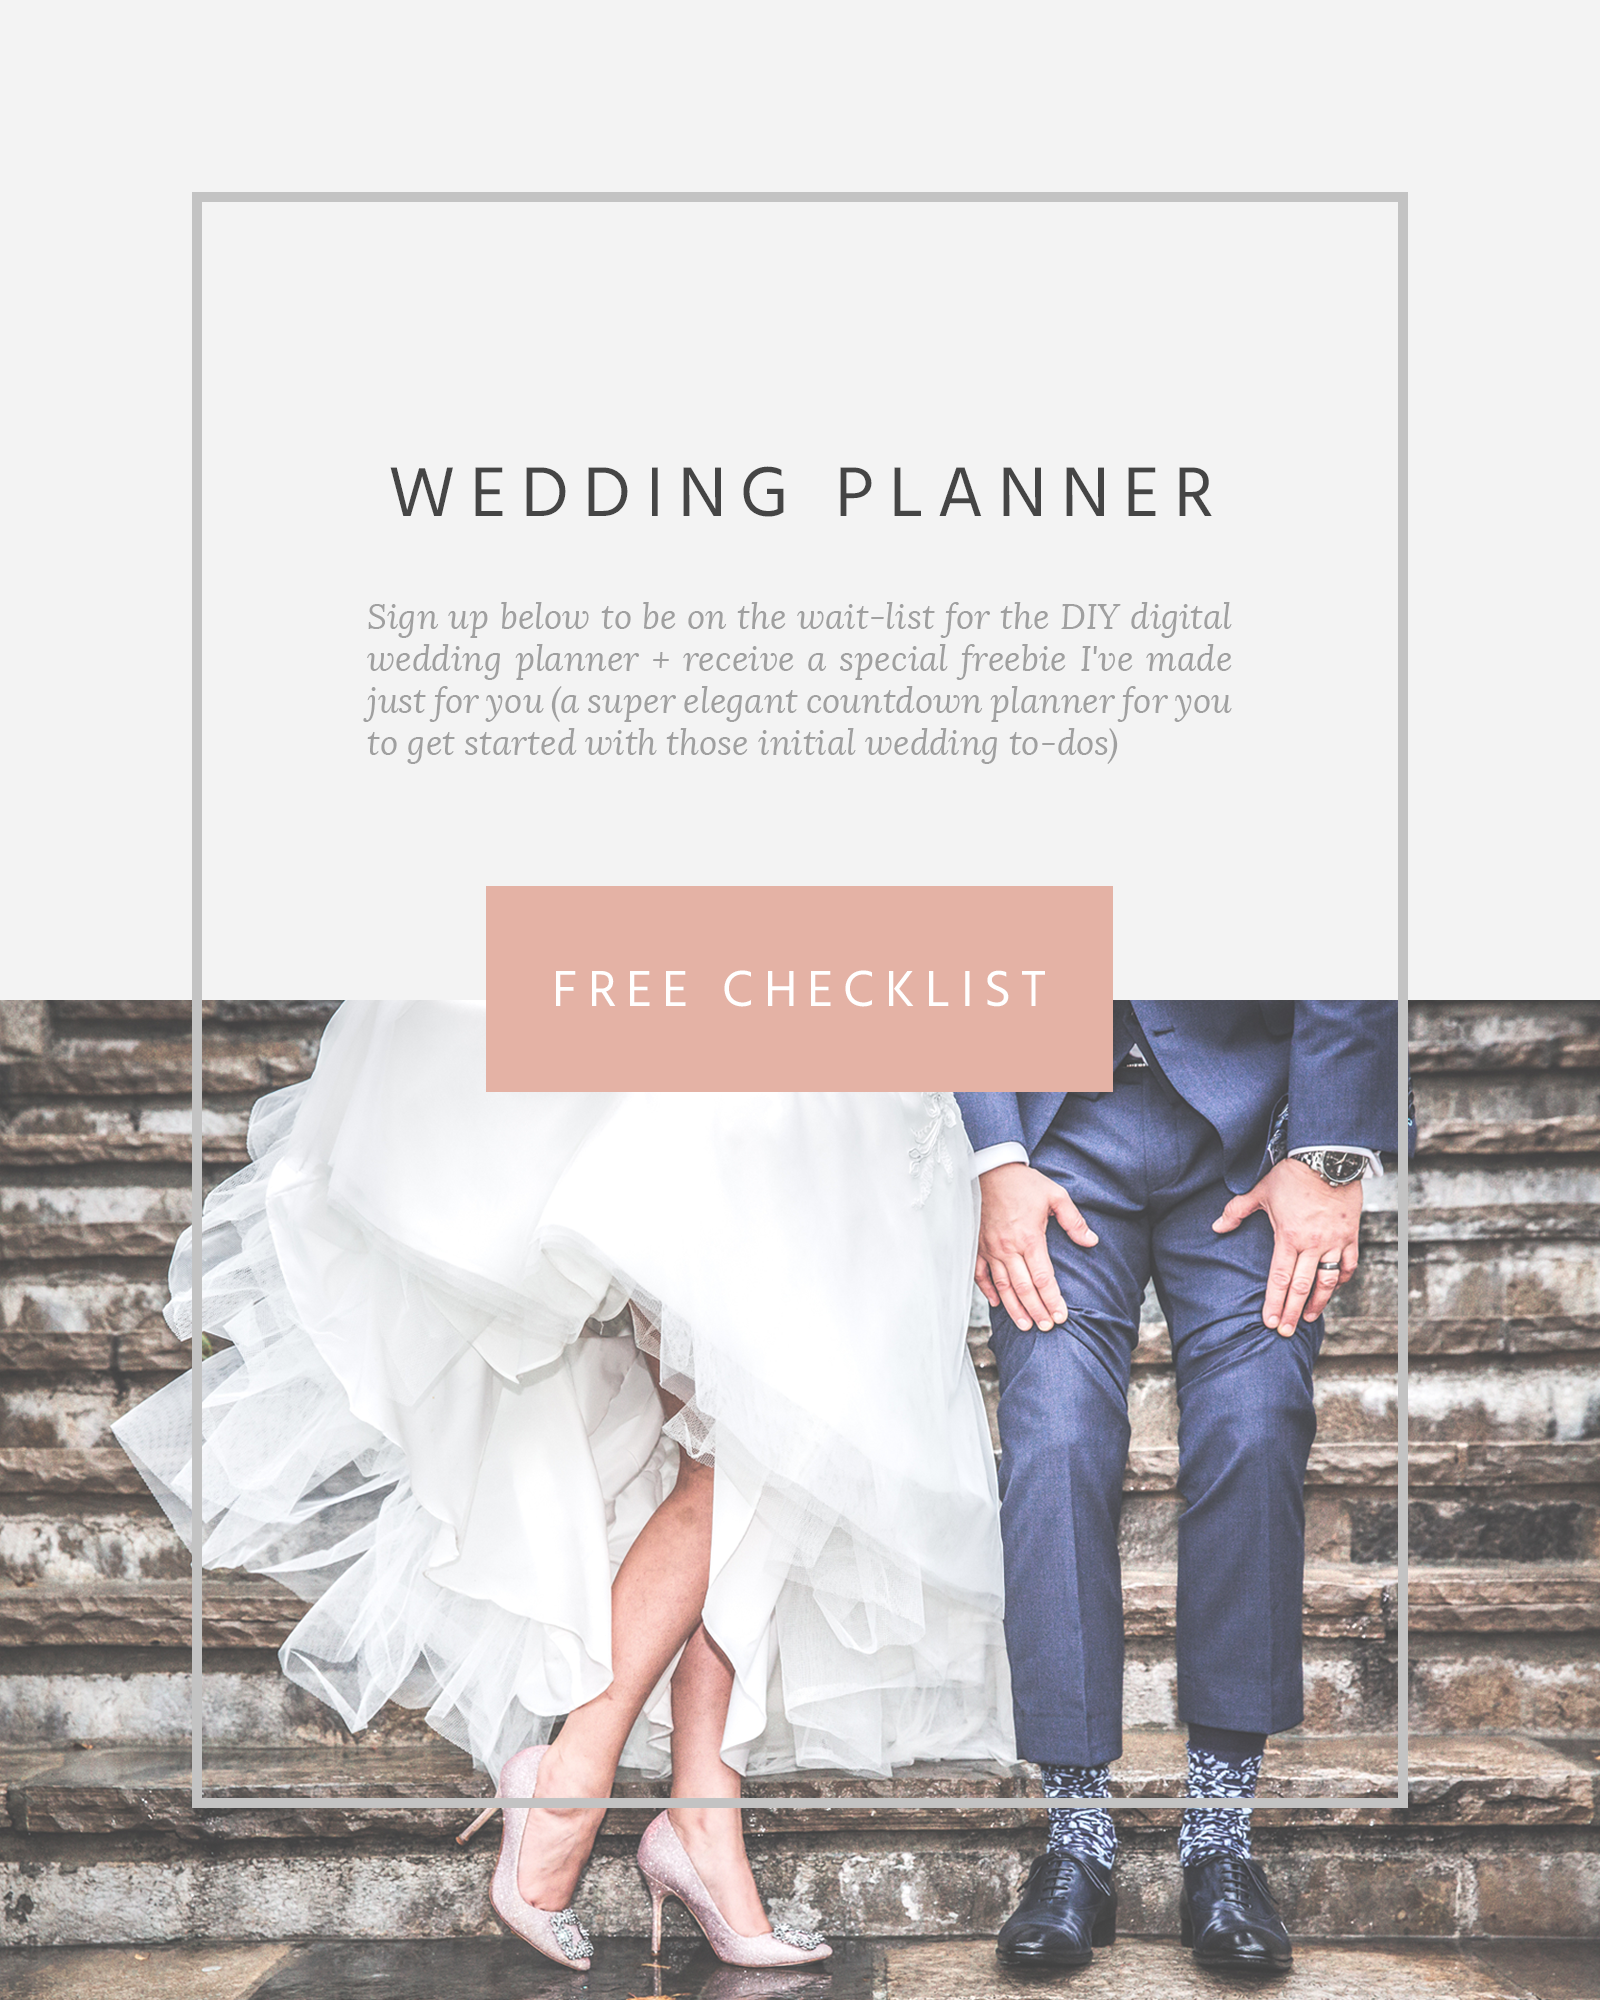 Lower half photo of Bride and Groom showing off pink heels and blue patterned socks - waitlist for digital wedding planner plus free wedding checklist